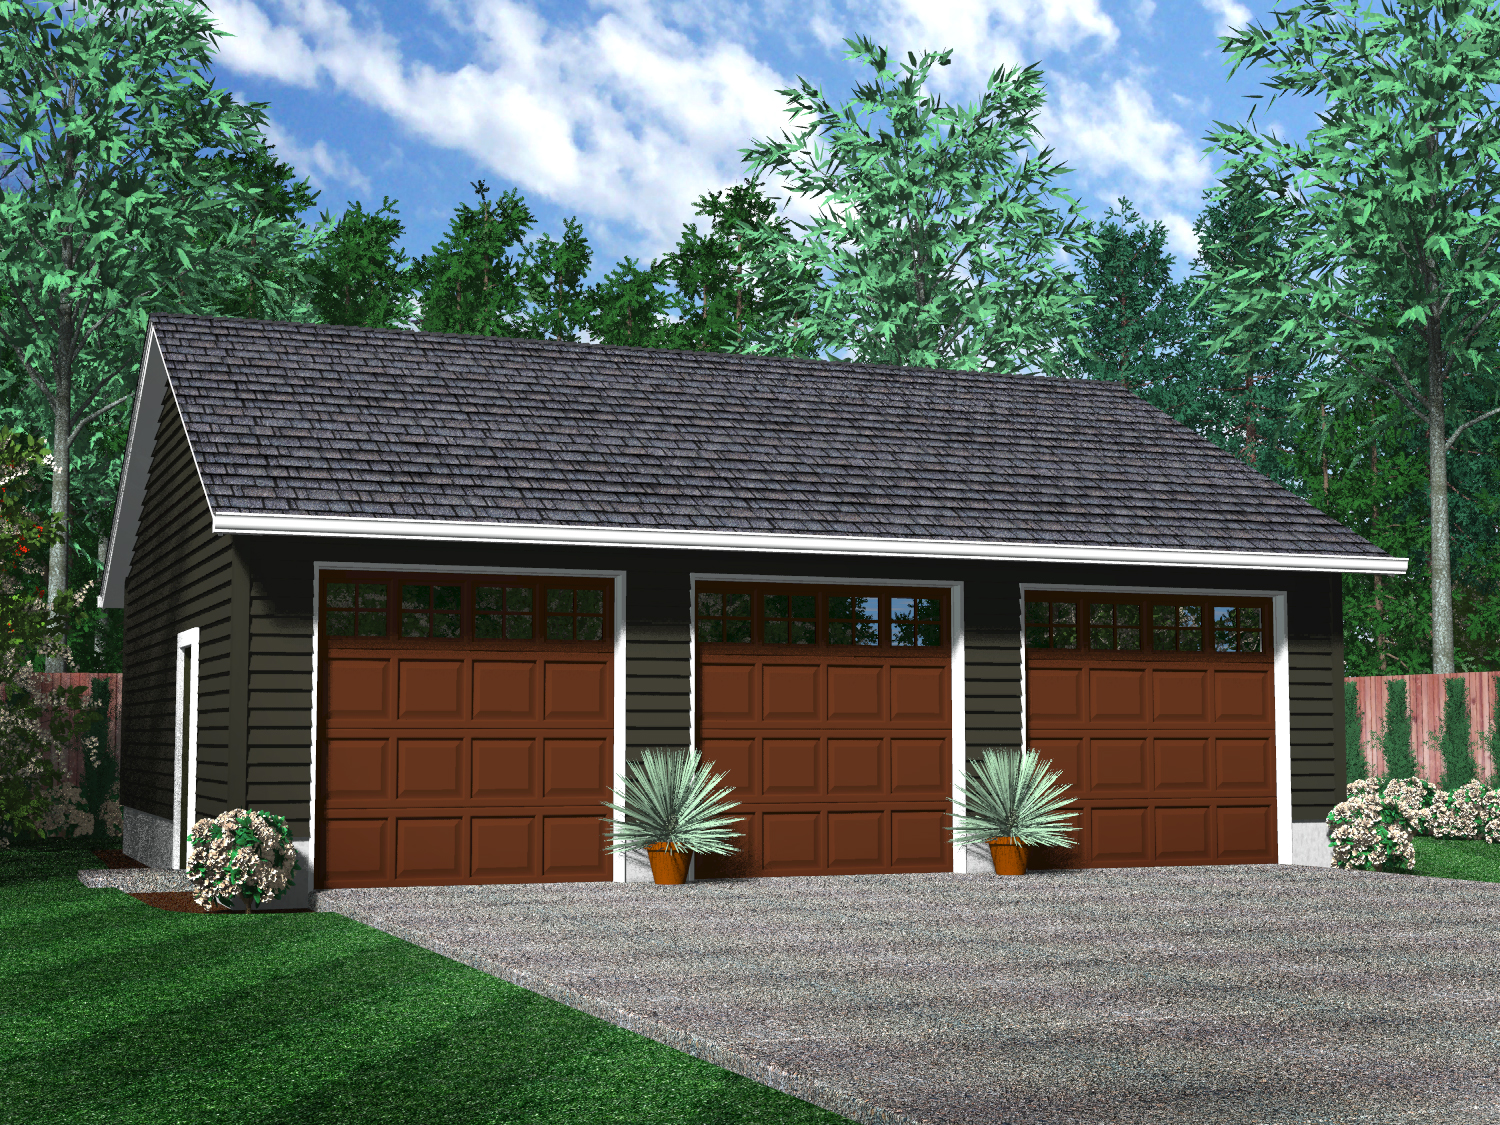 Detached 3 car garage plans home desain 2018 for Two car garage plans with bonus room